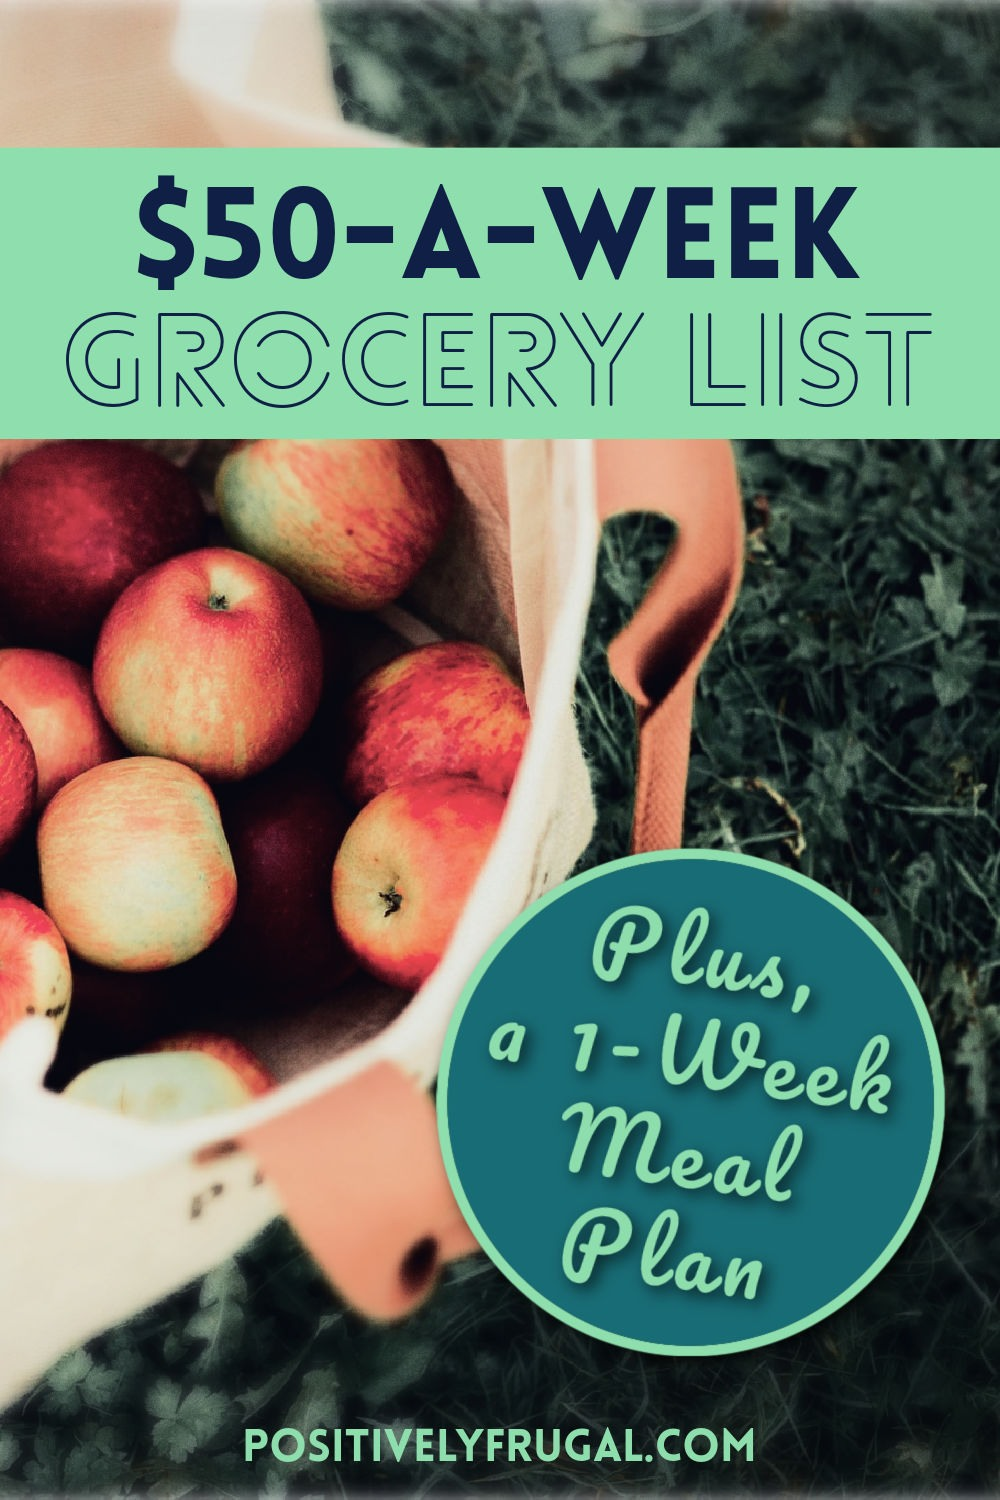 $50 a Week Grocery List by PositivelyFrugal.com